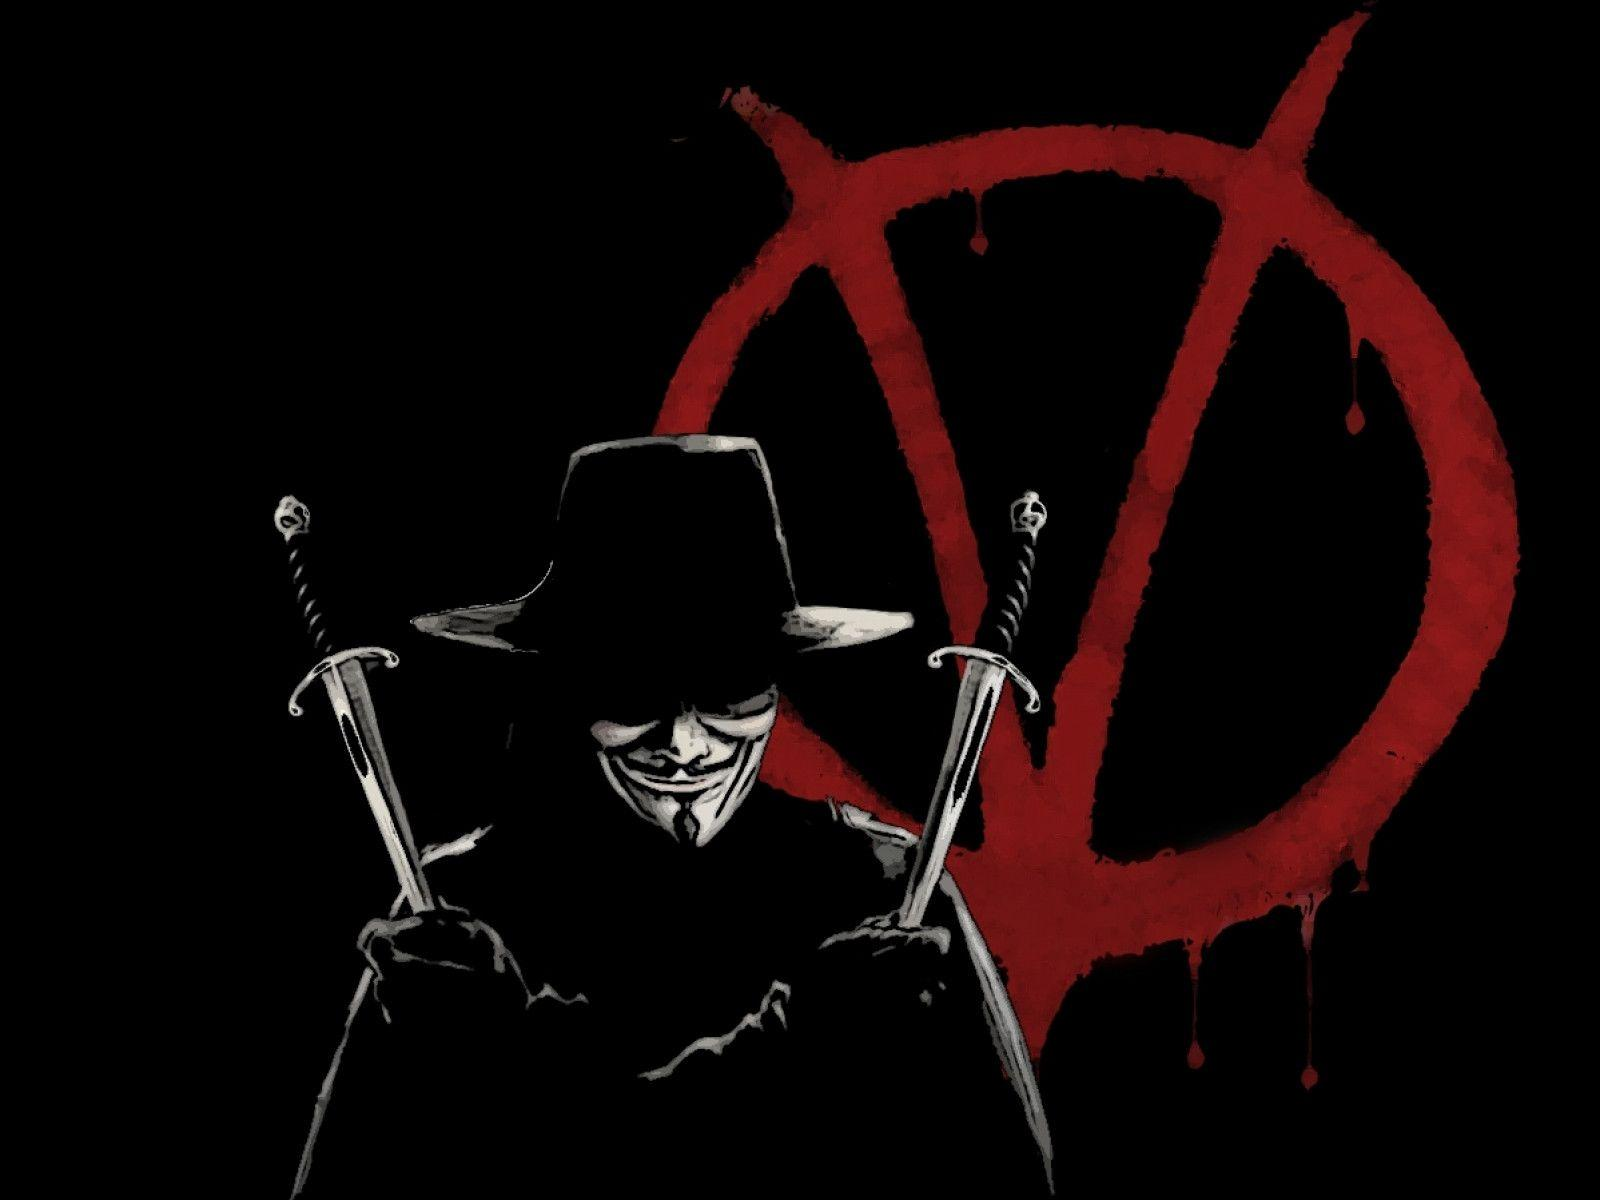 V for Vendetta (2005) wallpapers | HD Windows Wallpapers